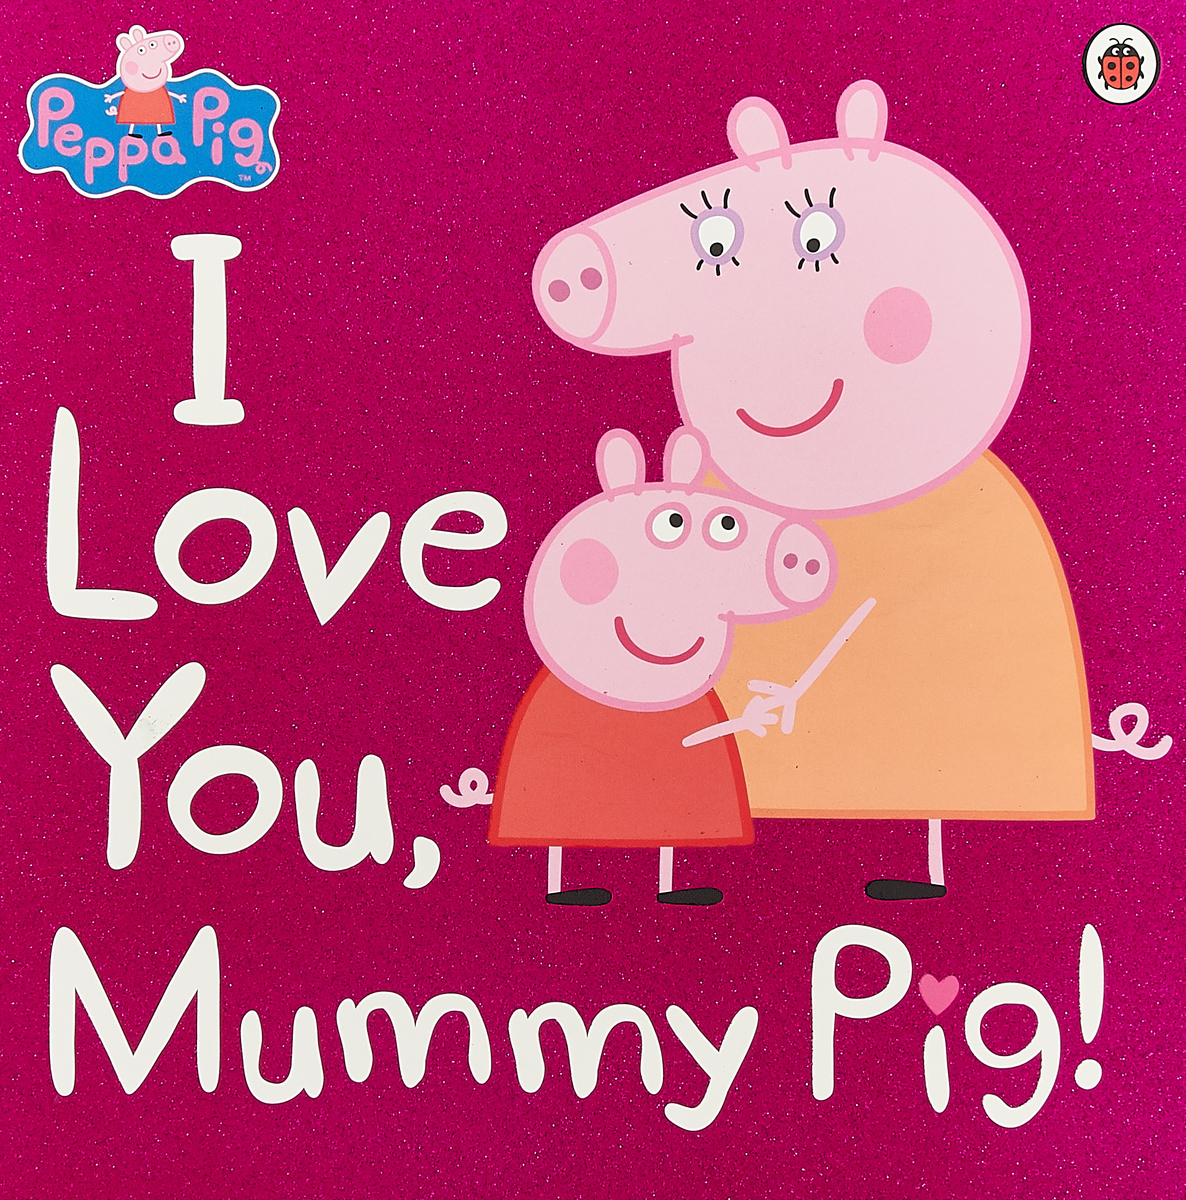 Peppa Pig: I Love You Mummy Pig i want to go to the fair